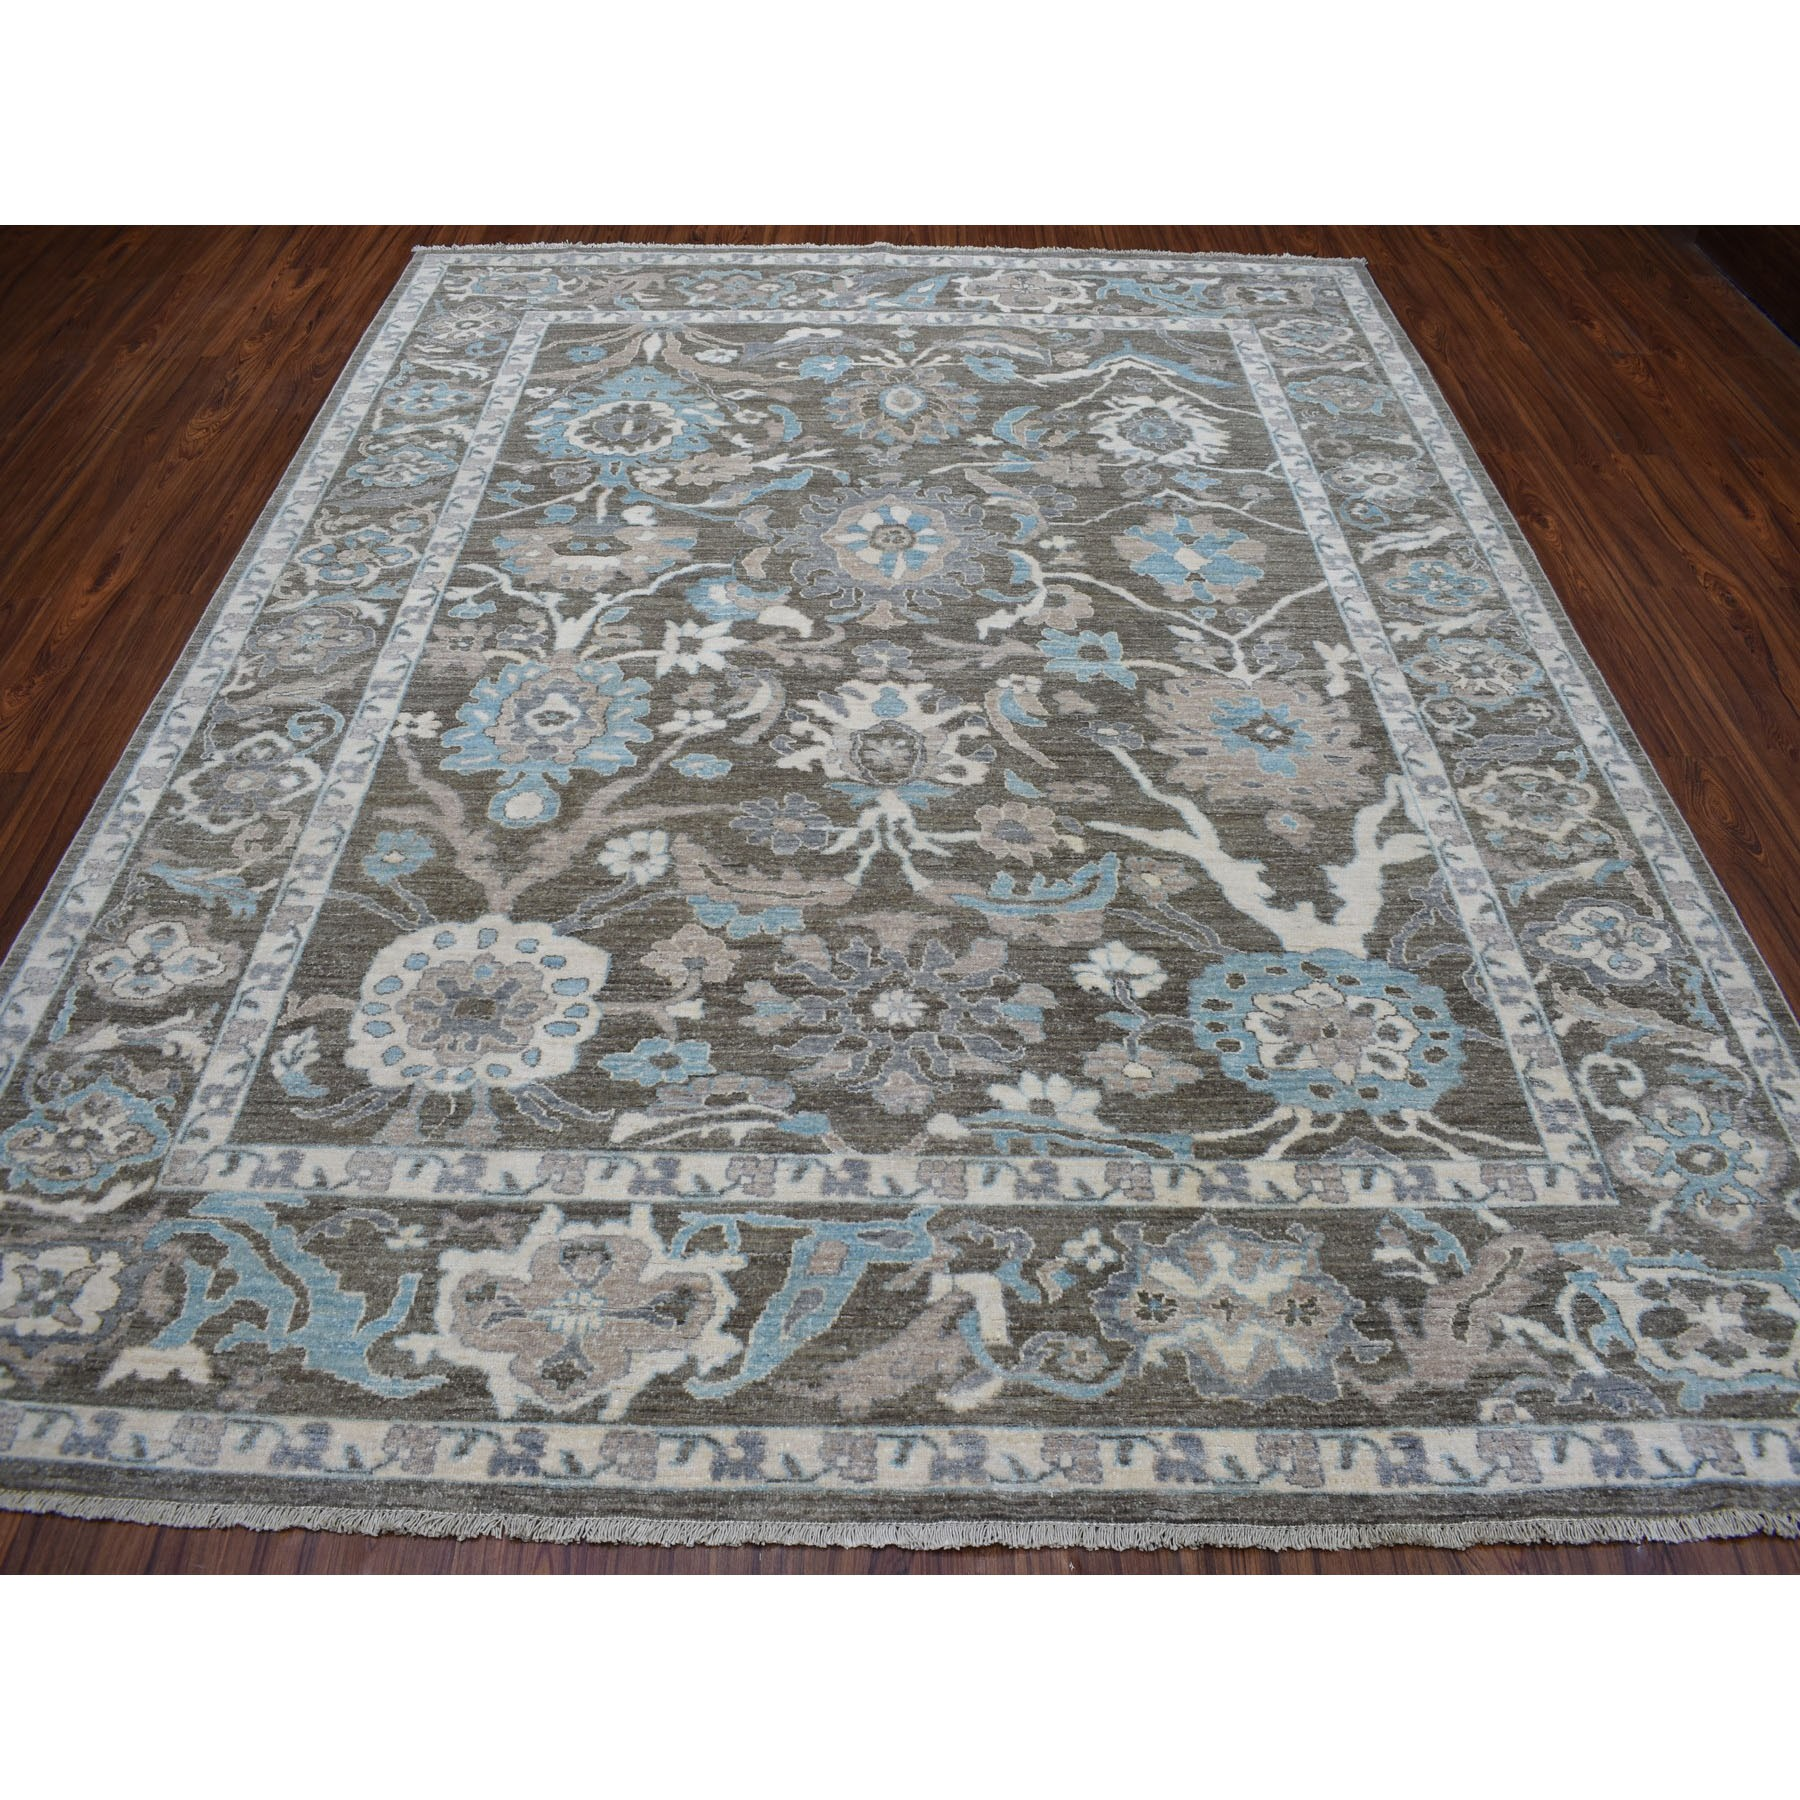 8-x9-8  Charcoal Black Peshawar with Floral Design Hand Knotted Natural Wool Oriental Rug